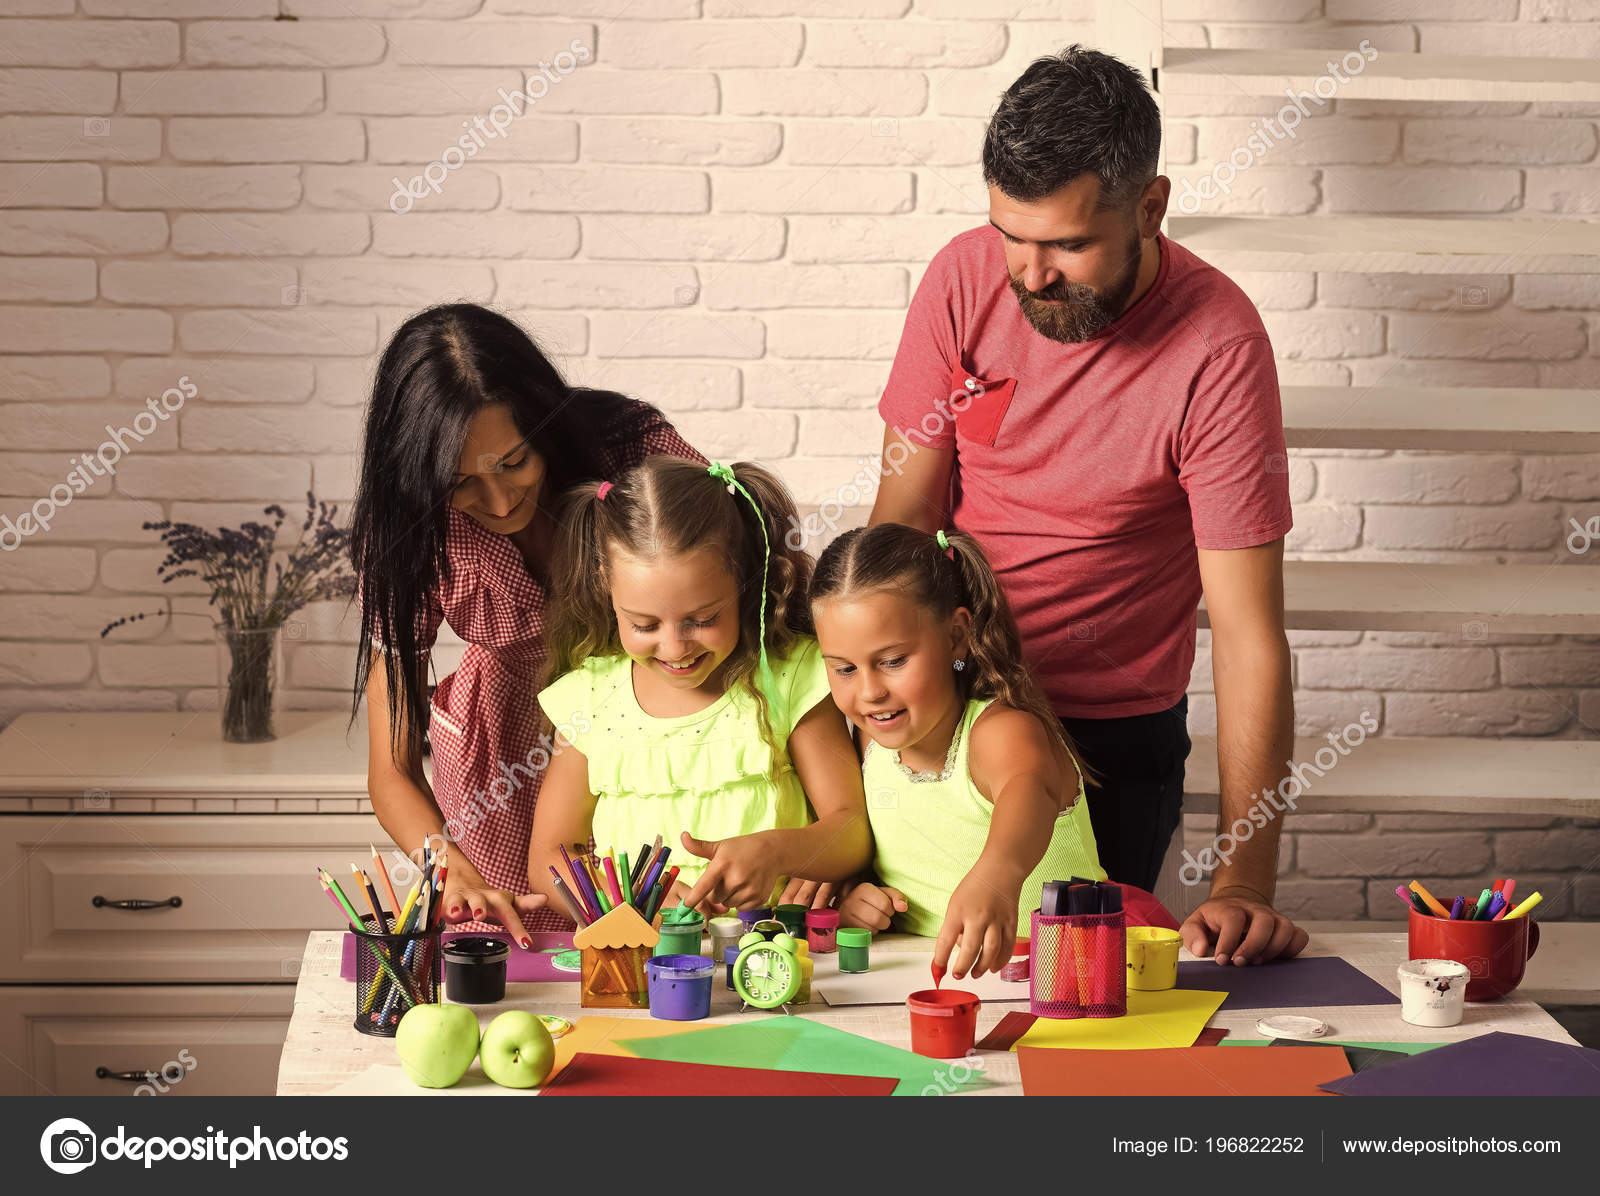 Finger Painting And Arts Girls Drawing With Mother And Father Children Playing And Learning With Parents Happy Childhood And Parenting